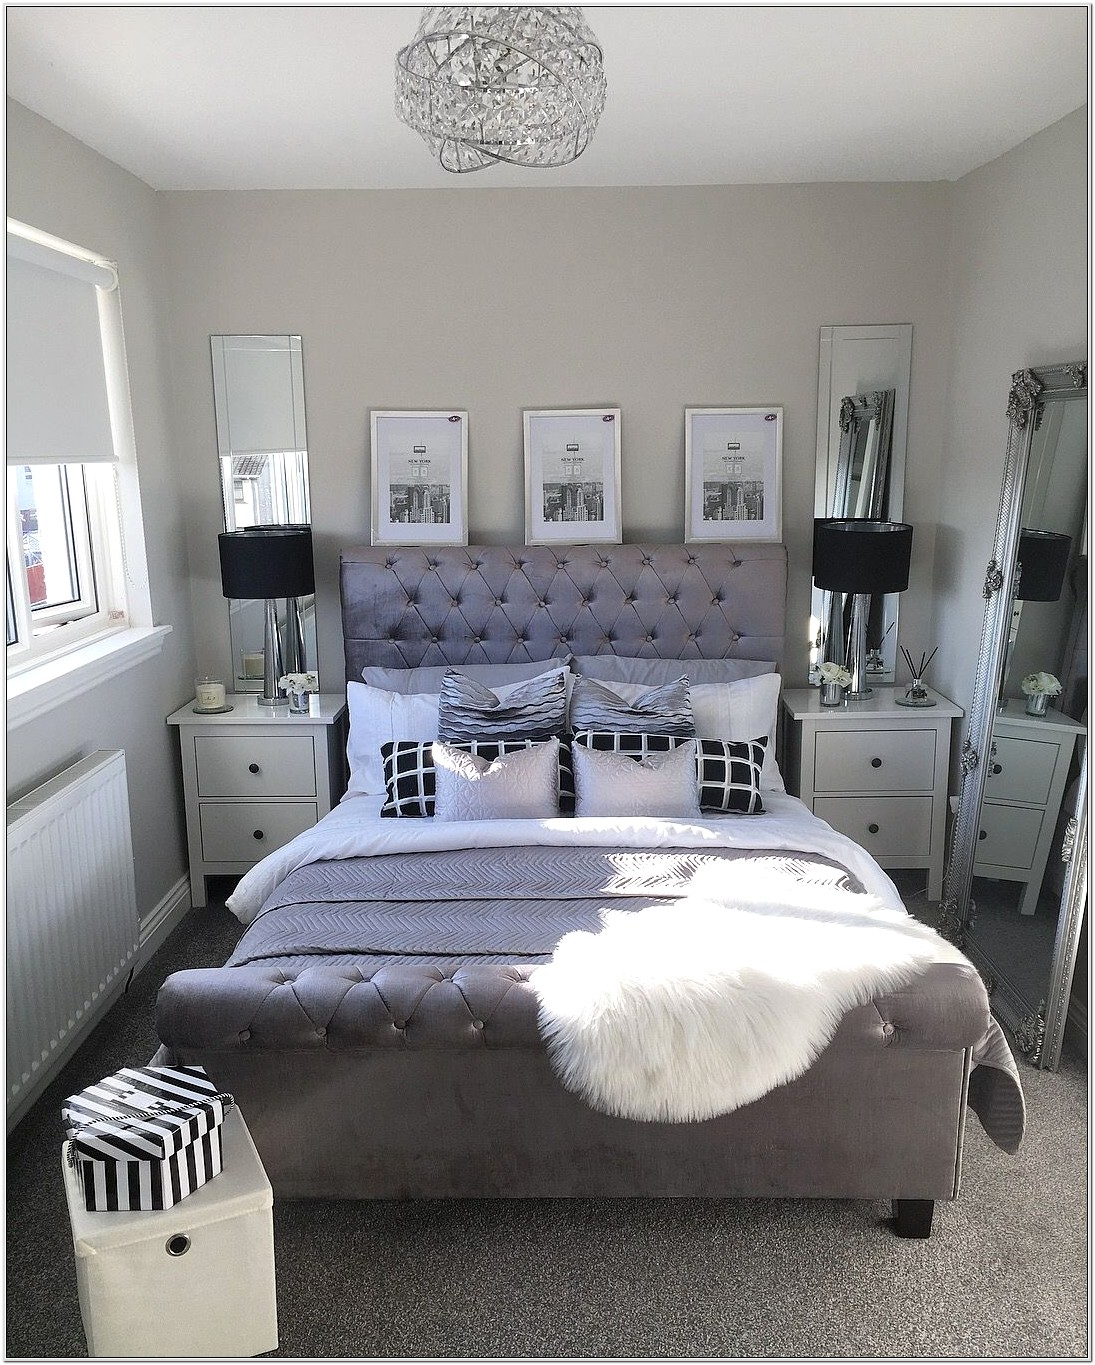 Bedroom Decorating With Mirror Above Bed